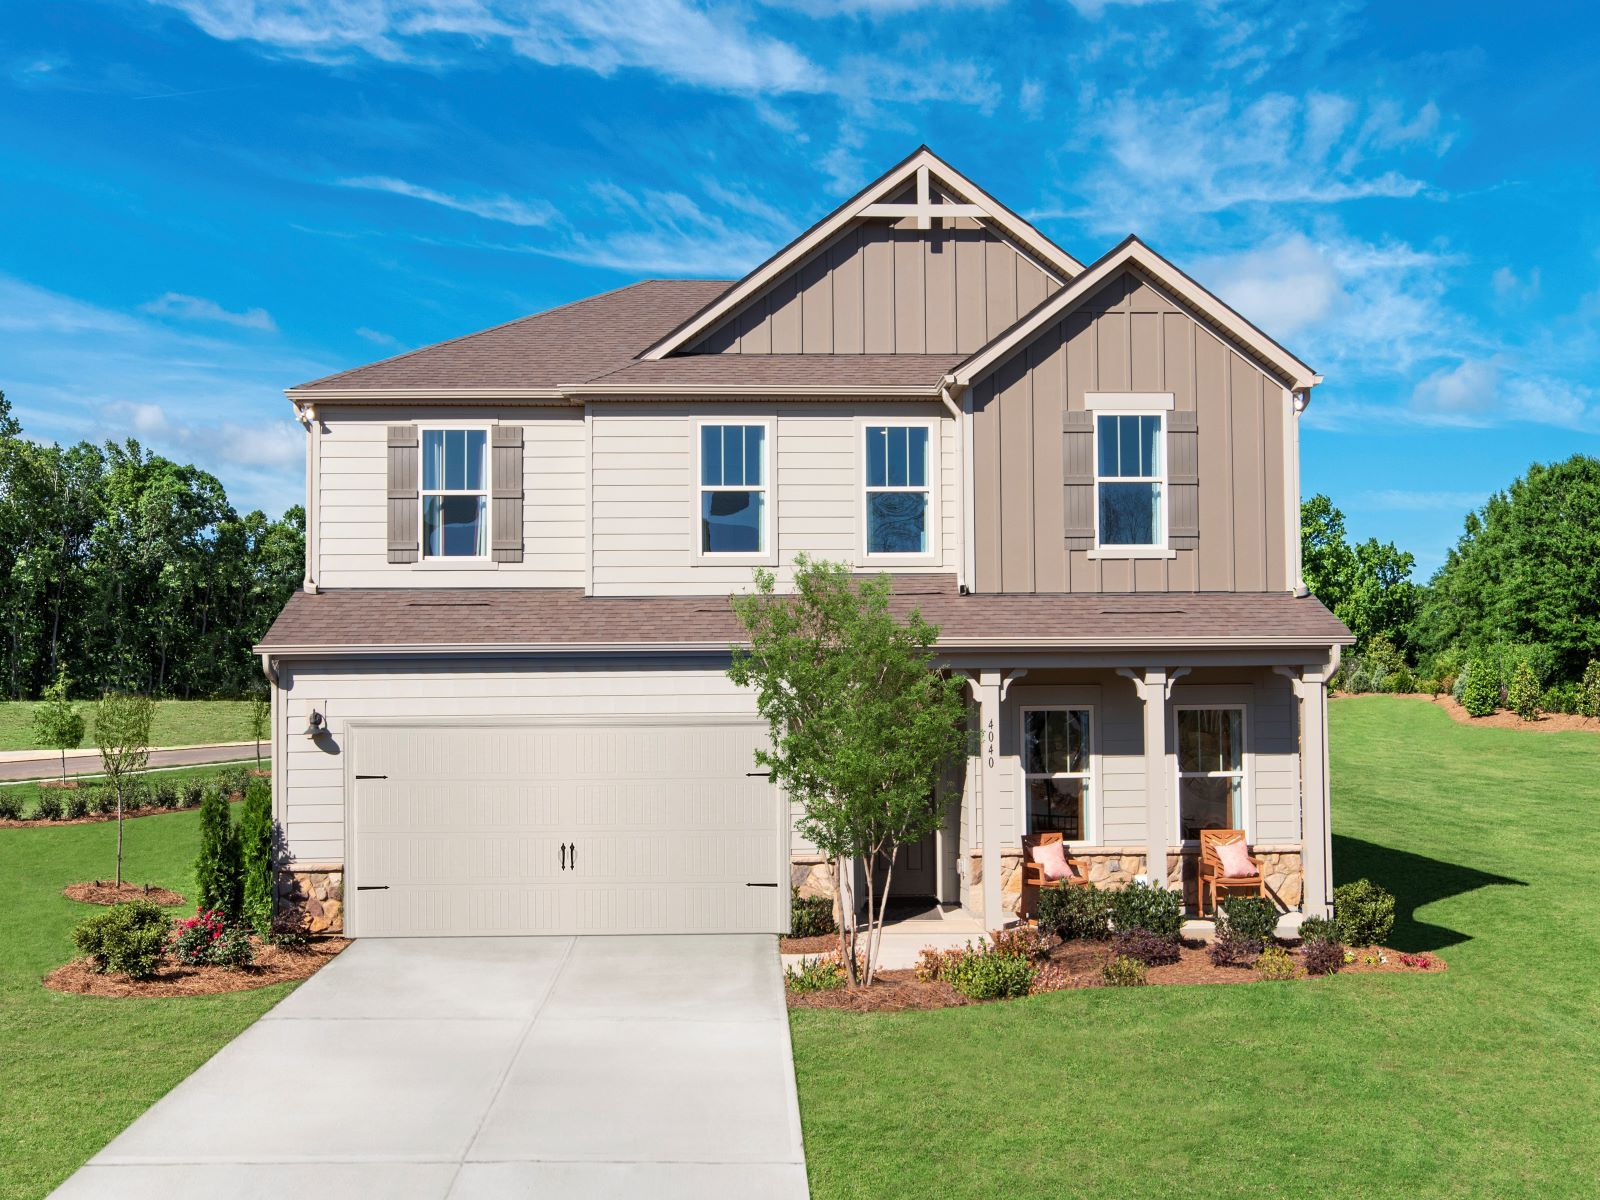 Amberley Chastain model home exterior